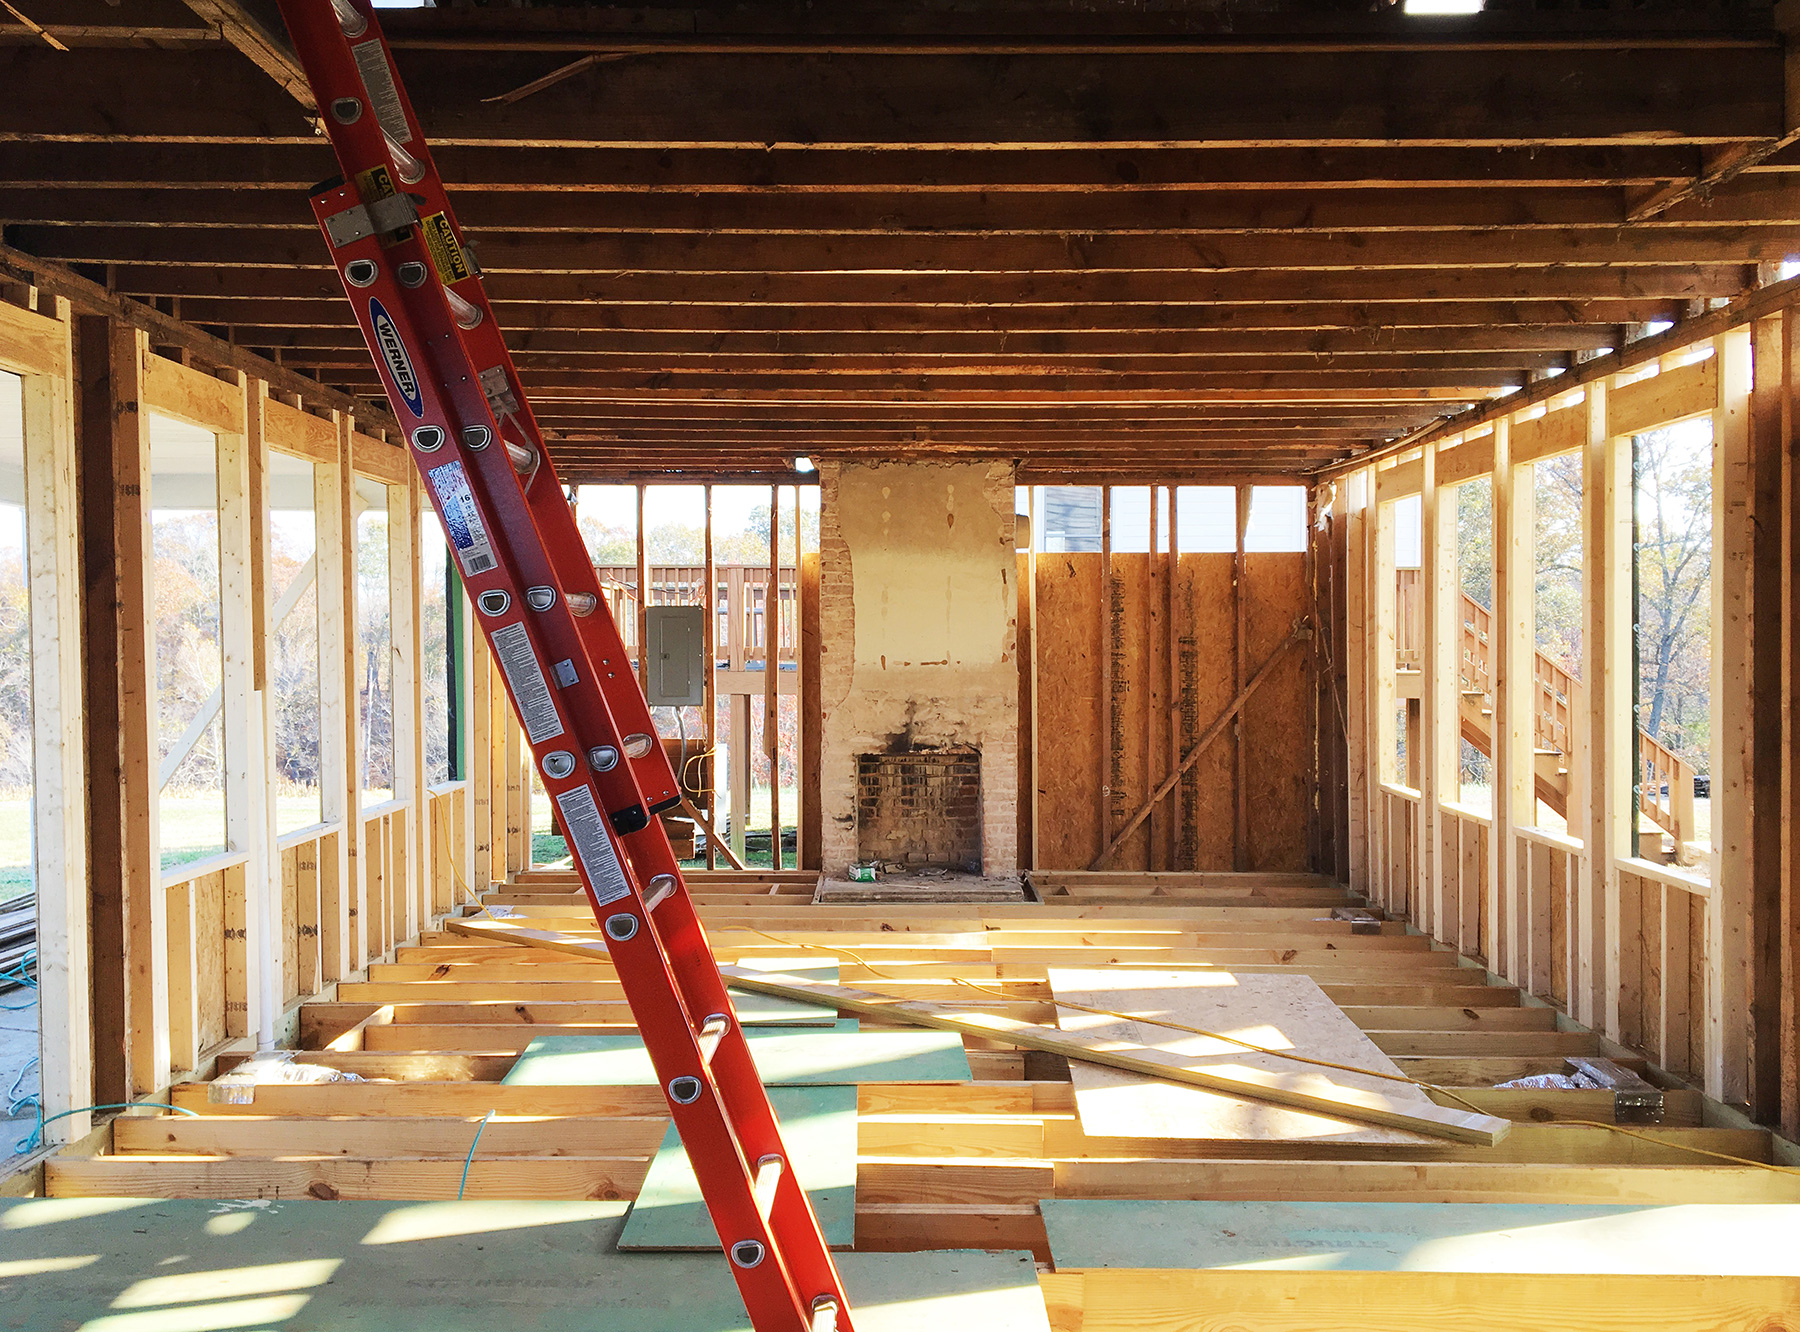 THE WALLS WERE REFRAMED AS REQUIRED FOR NEW WINDOWS AND ADDED STRENGTH; THE SECOND FLOOR WAS REINFORCED WITH LAMINATED VENEER LUMBER.